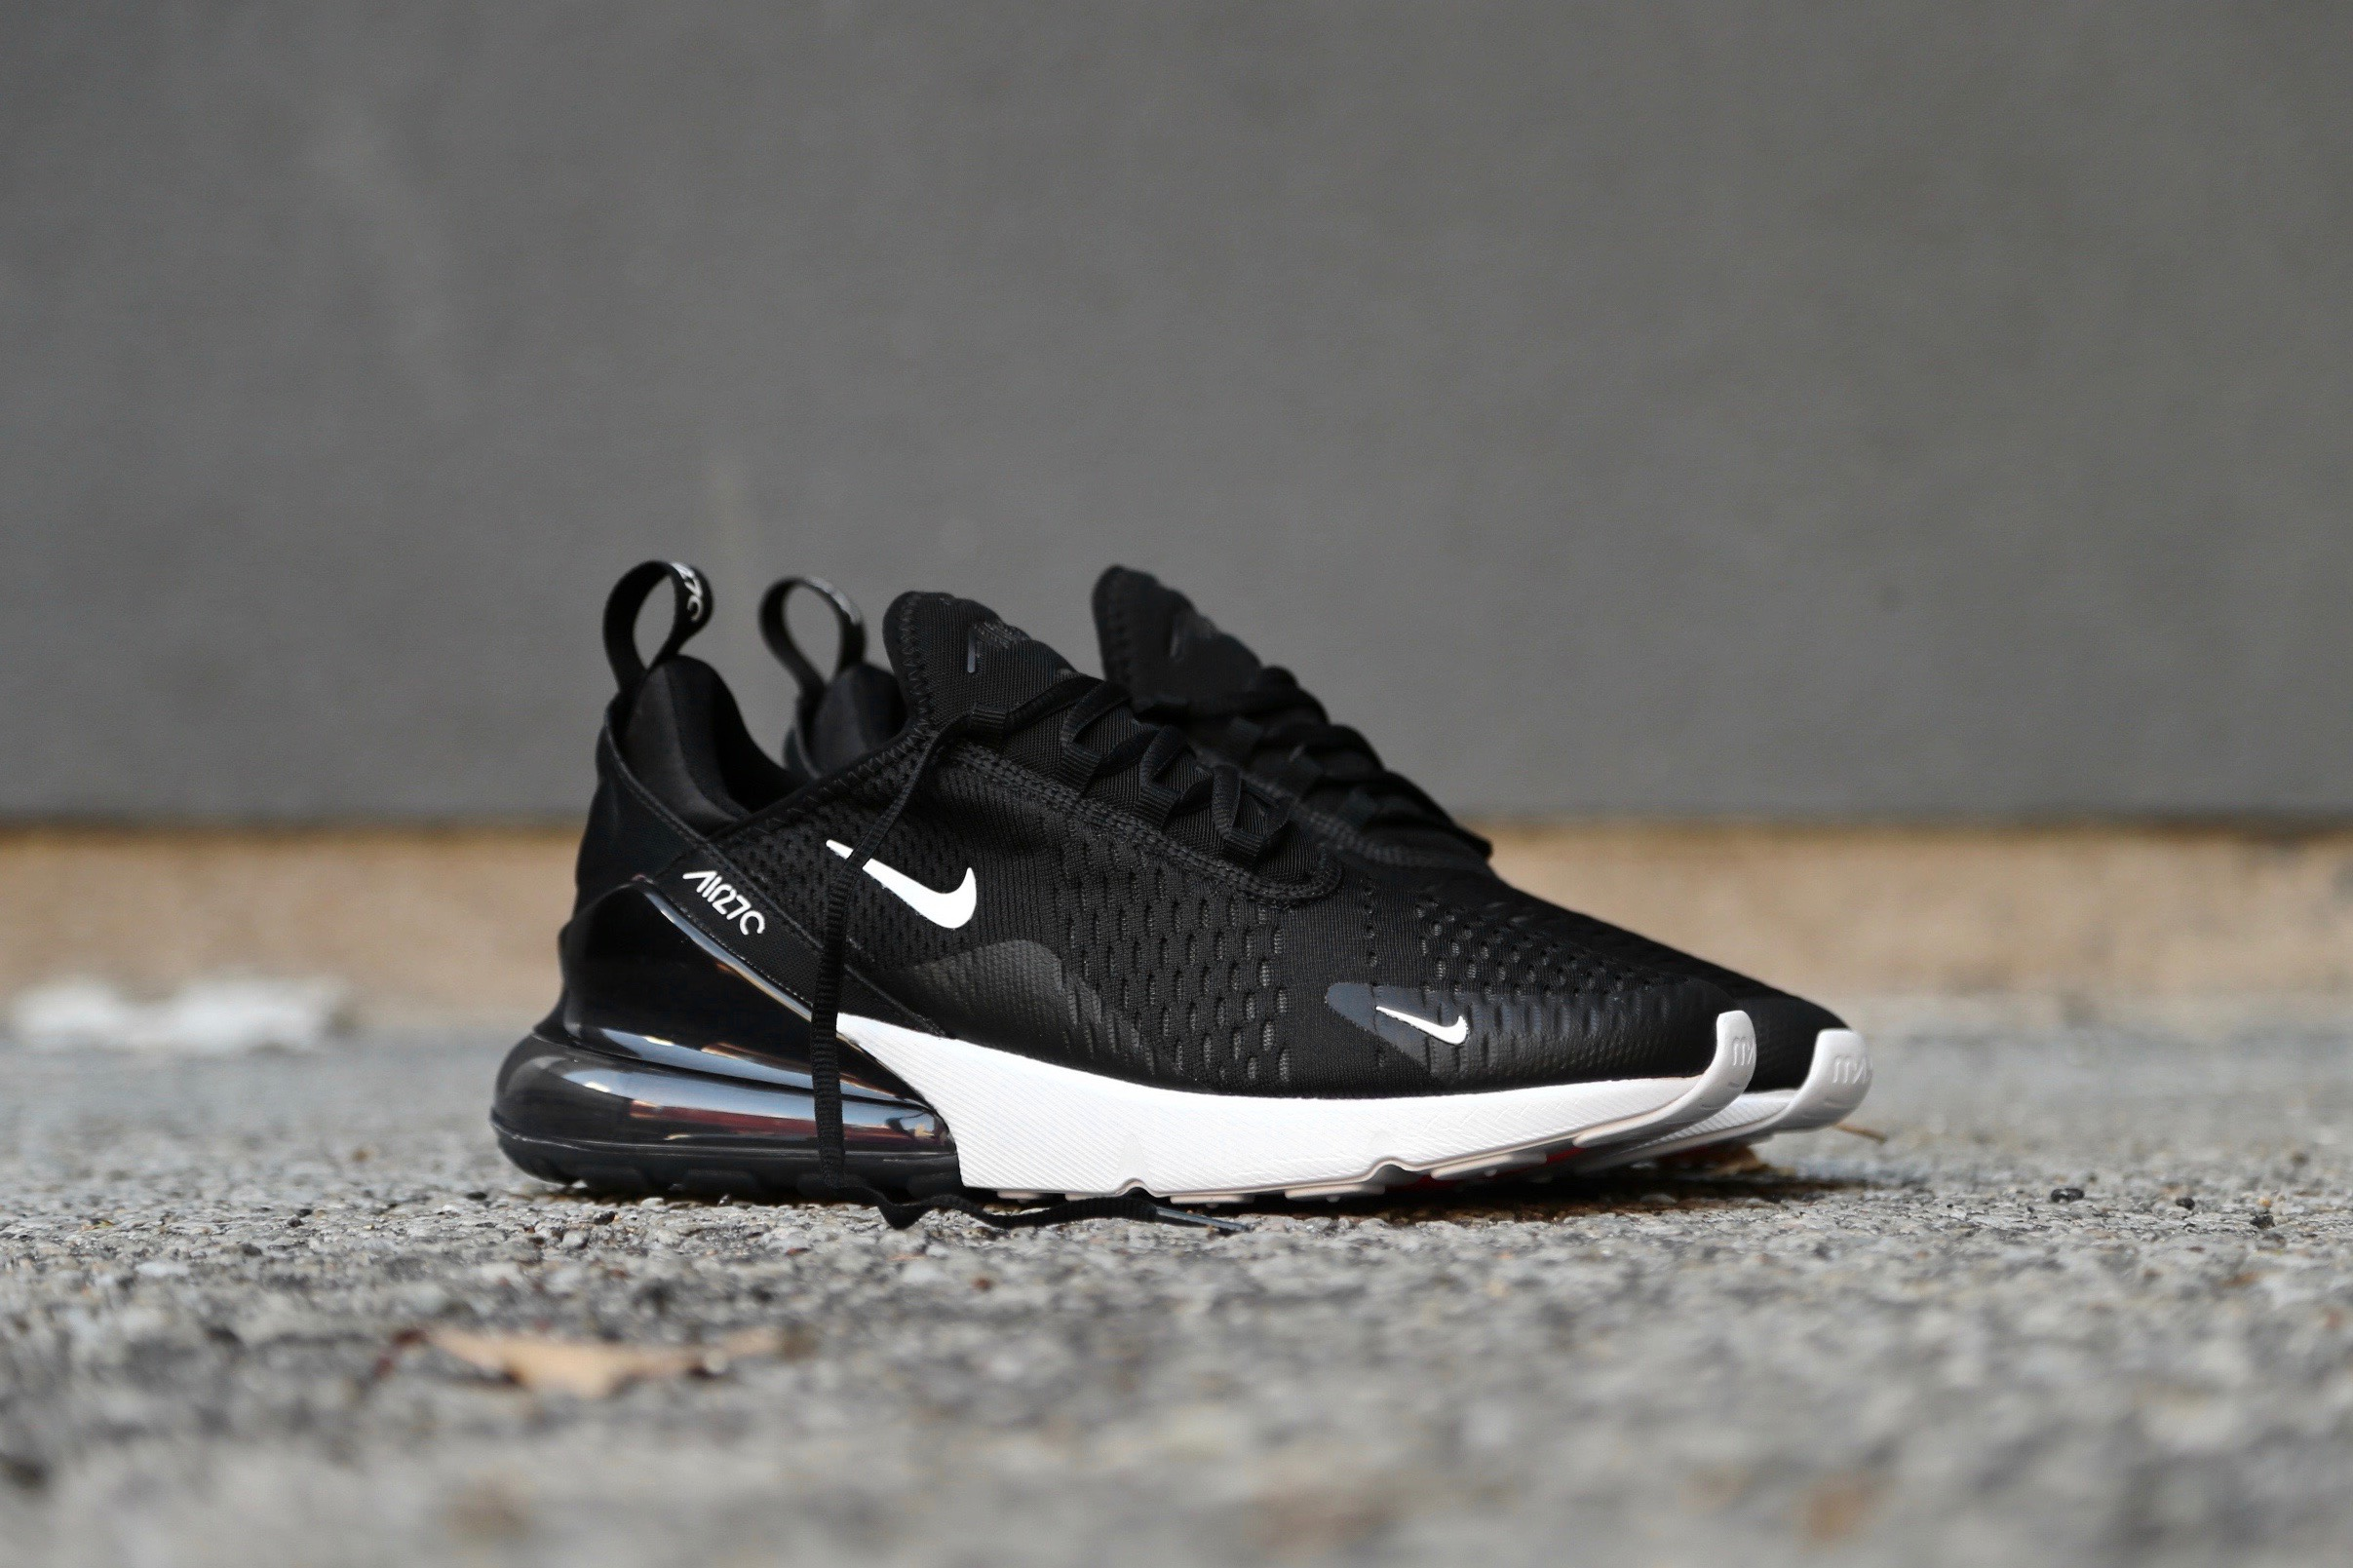 8e9a14f9d3 Nike Air Max 270 – Black / White / Solar Red / Anthracite – STASP